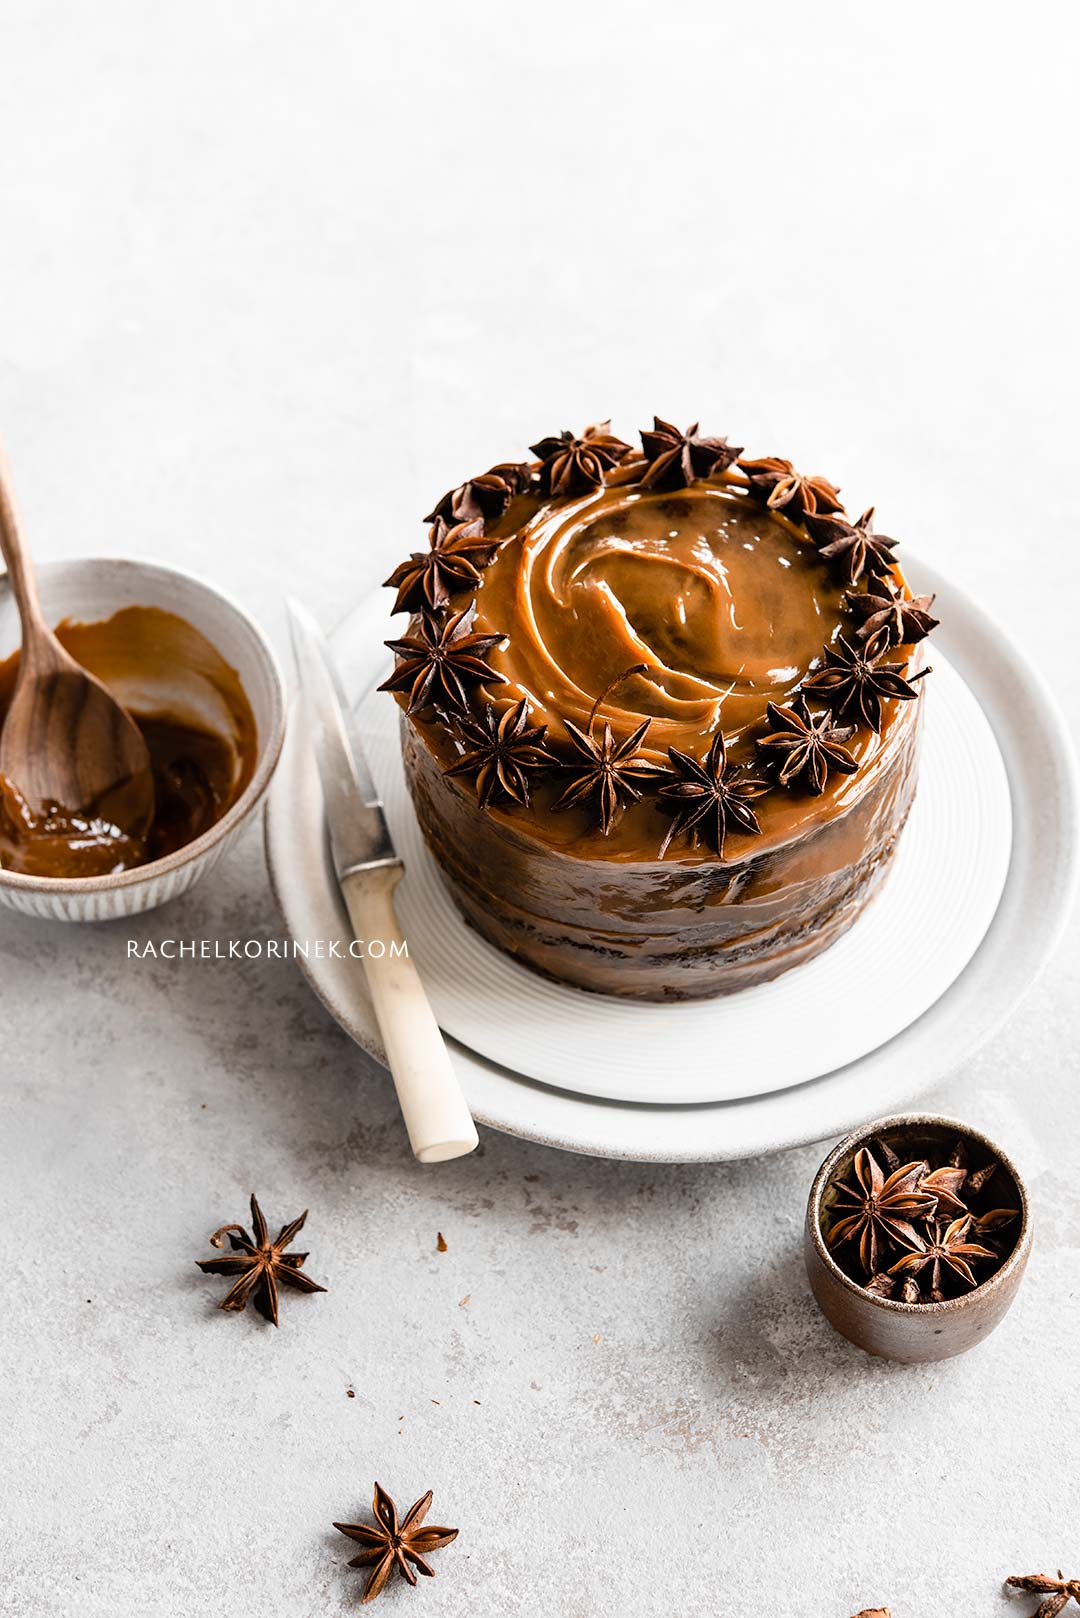 Rachel Korinek   Food Photographer Spiced Sticky Date Cake  Click to check out my latest food photography projects.  #twolovesstudio #beautifulcuisine #foodbloggerpro #foodphotography #learnfoodphotography #foodblogger #learnphotography #foodstyling #lightingtips #naturallight #foodphotographer